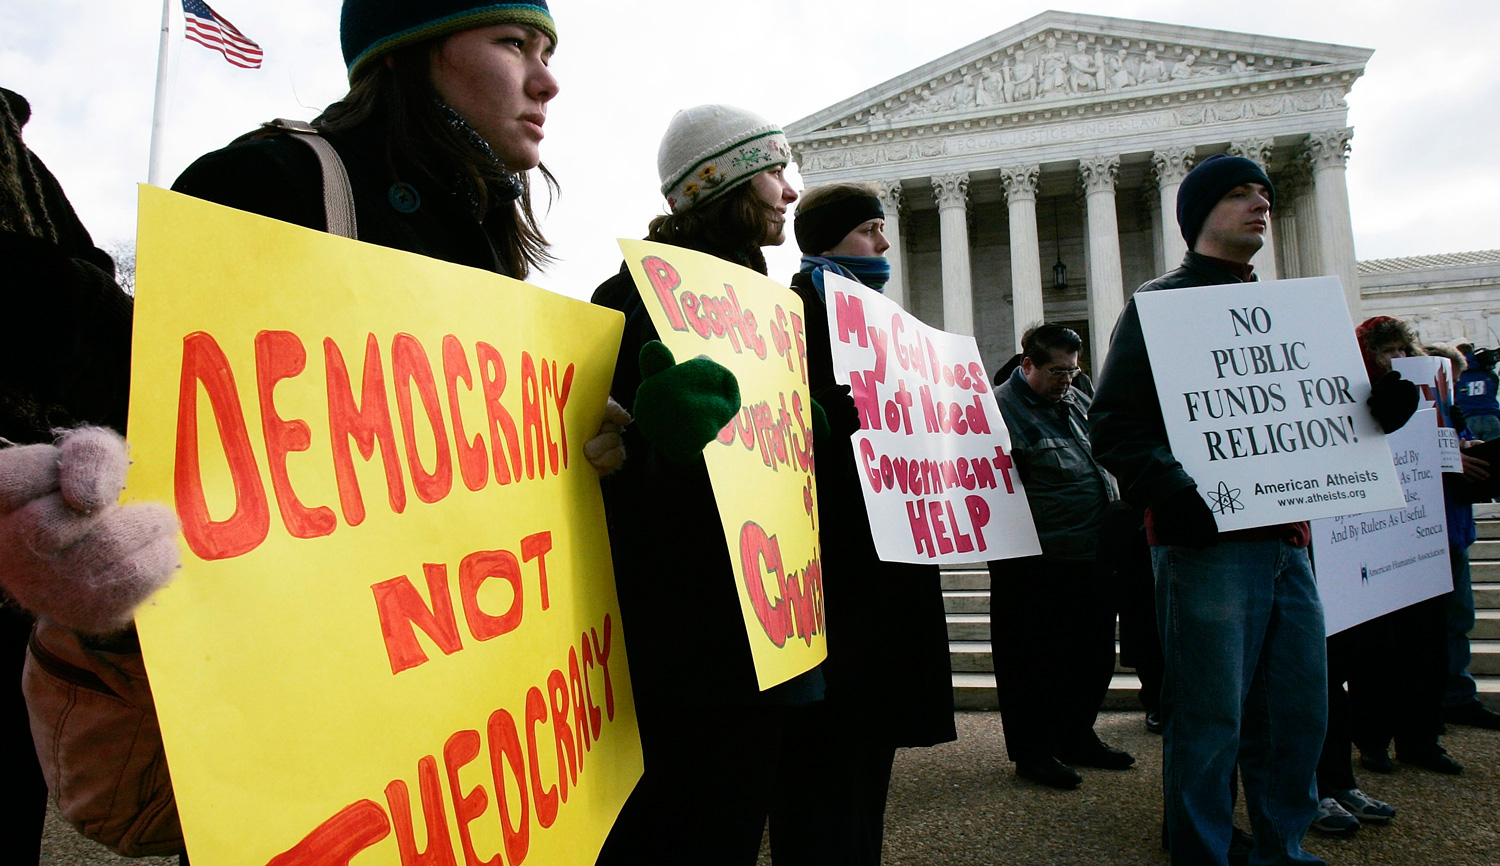 Activists during a rally in front of the U.S. Supreme Court on March 2, 2005. Alex Wong/Getty Images.